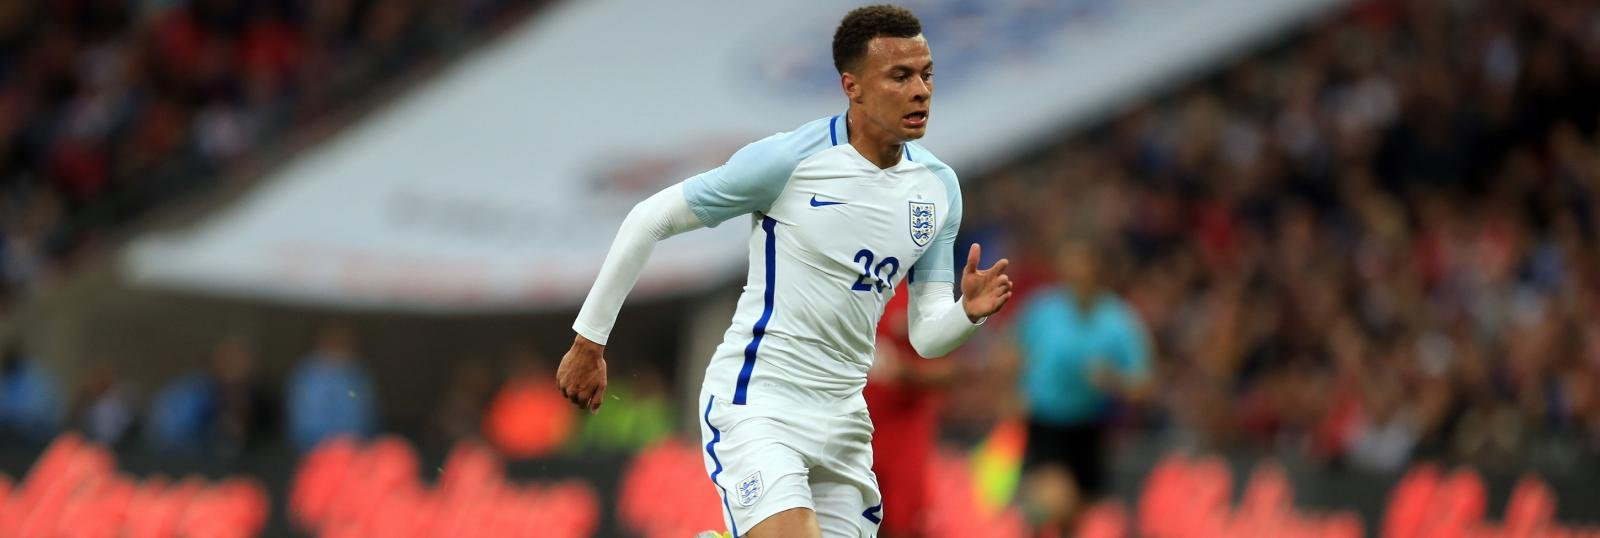 Euro 2016 Q&A: Boy Jumps Ship liken Dele Alli to Paul Gascoigne, but tip Germany to win